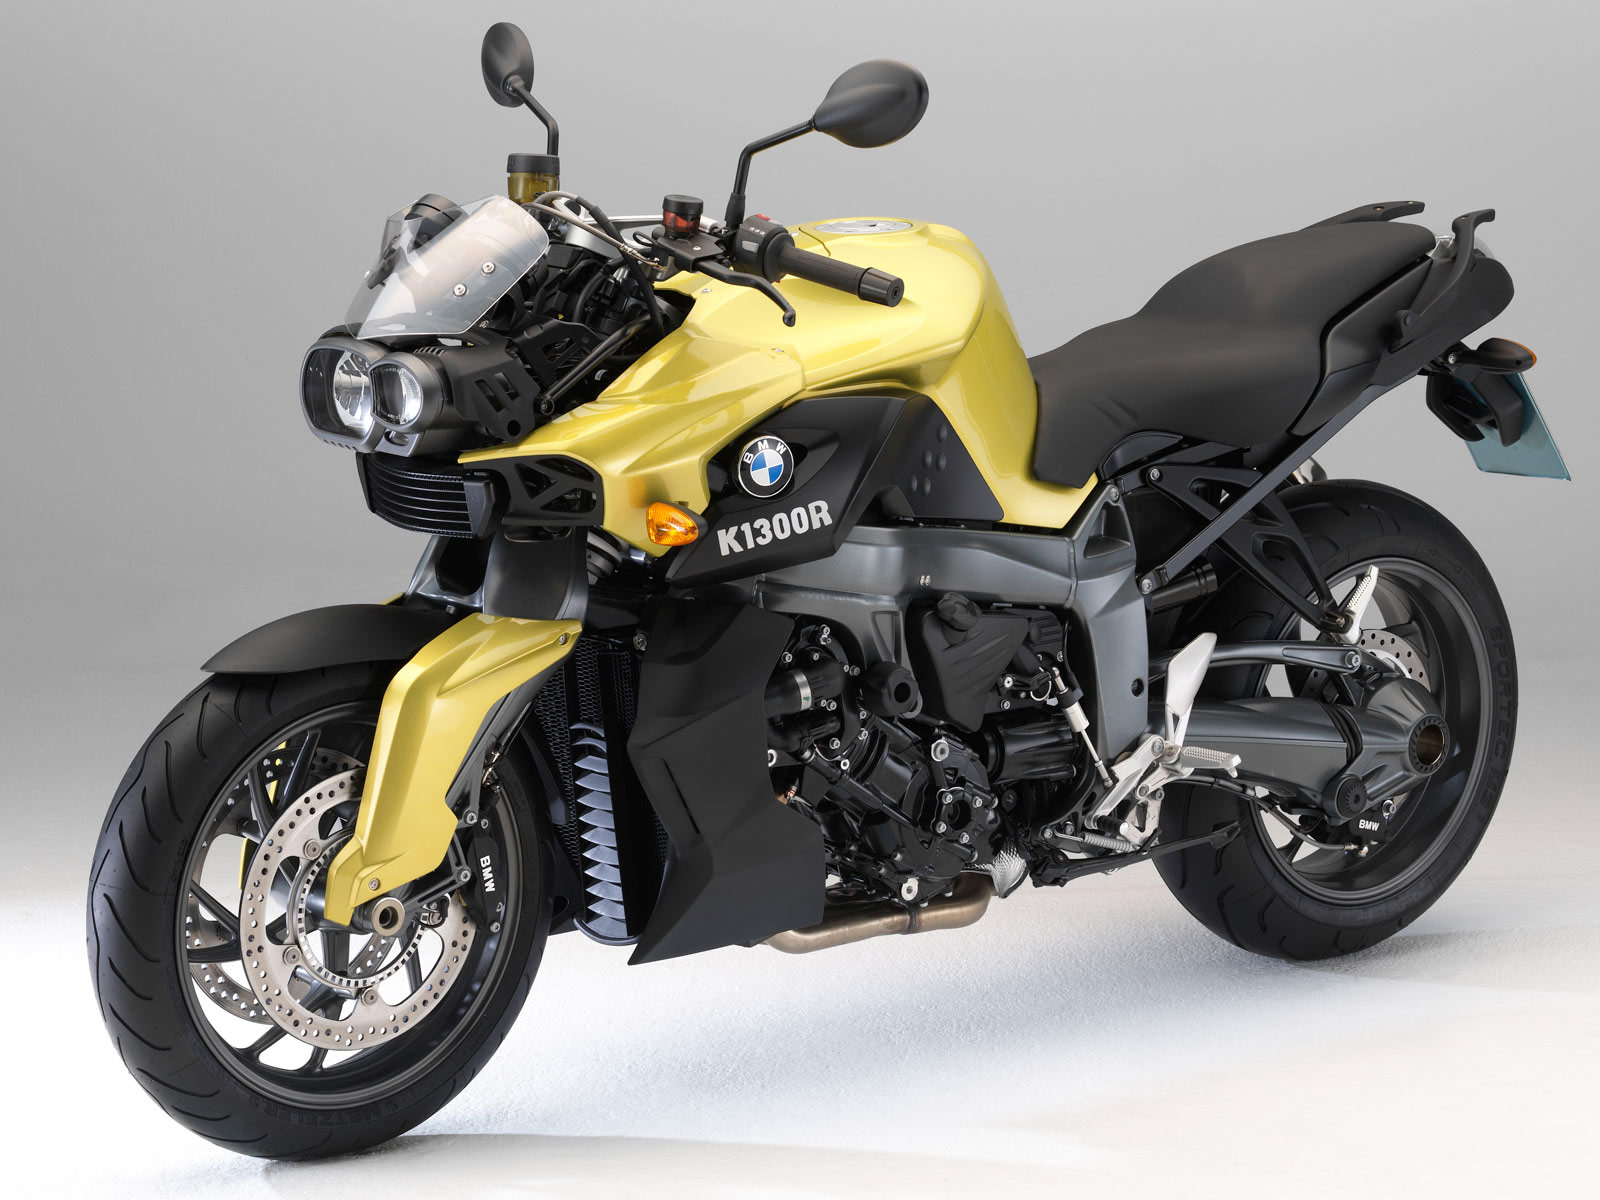 2010 bmw k1300r accident lawyers info wallpapers specs. Black Bedroom Furniture Sets. Home Design Ideas